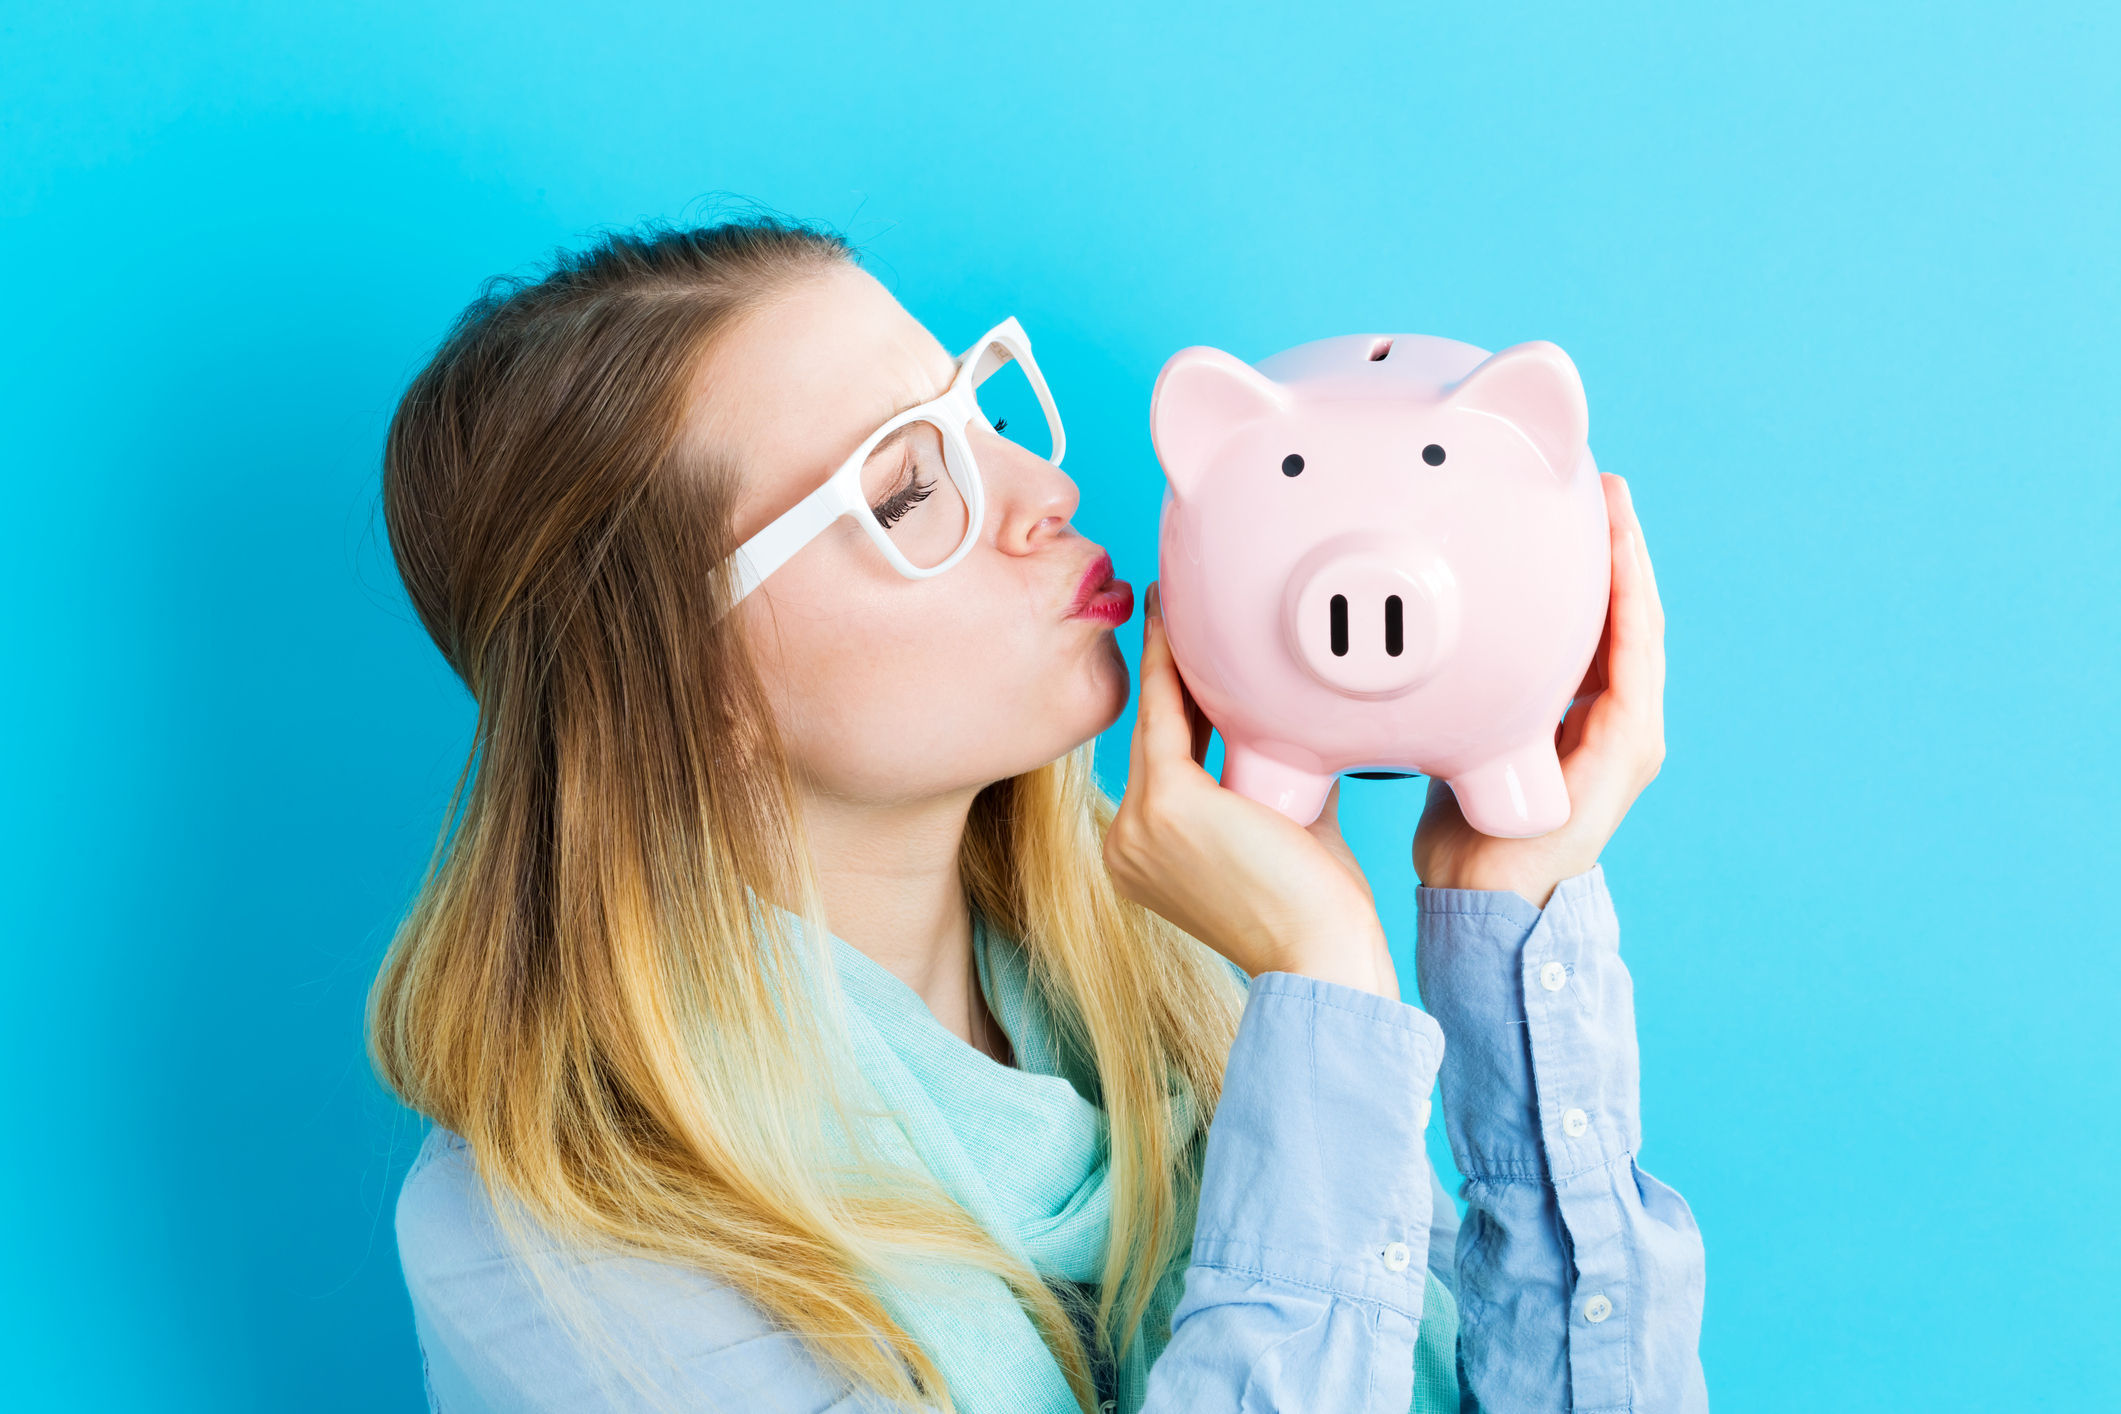 Young woman with a piggy bank. Photo: Thinkstock/PA